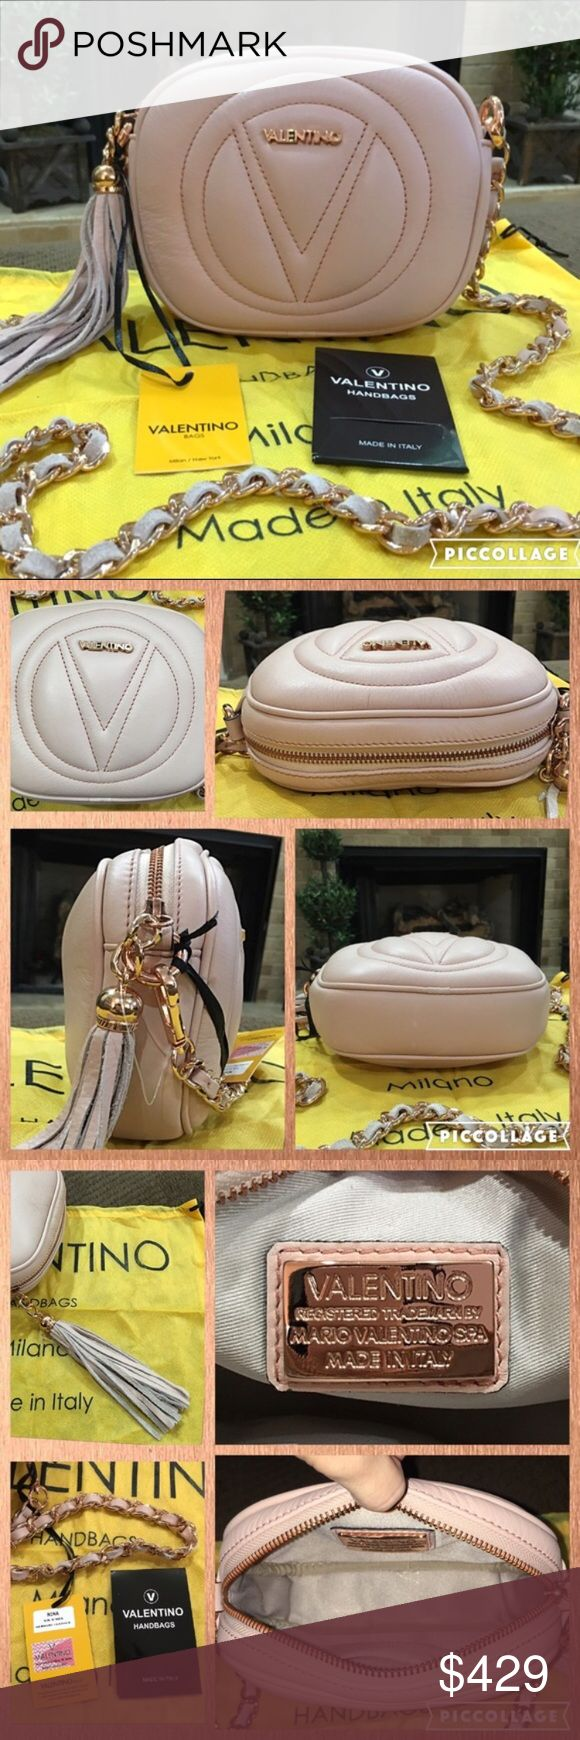 BNWT! Authentic Valentino Cross-body Bag! This is a gorgeous hard to find authentic VALENTINO crossbody bag by Mario Valentino in gorgeous nude/tan with pink undertone, caviar leather and rose gold hardware. The leather tassel adds a touch of style and class. Comes with original tags and dustbag. Perfect for any occasion! Dimensions: 8.25' L x 6.5' H Mario Valentino Bags Crossbody Bags